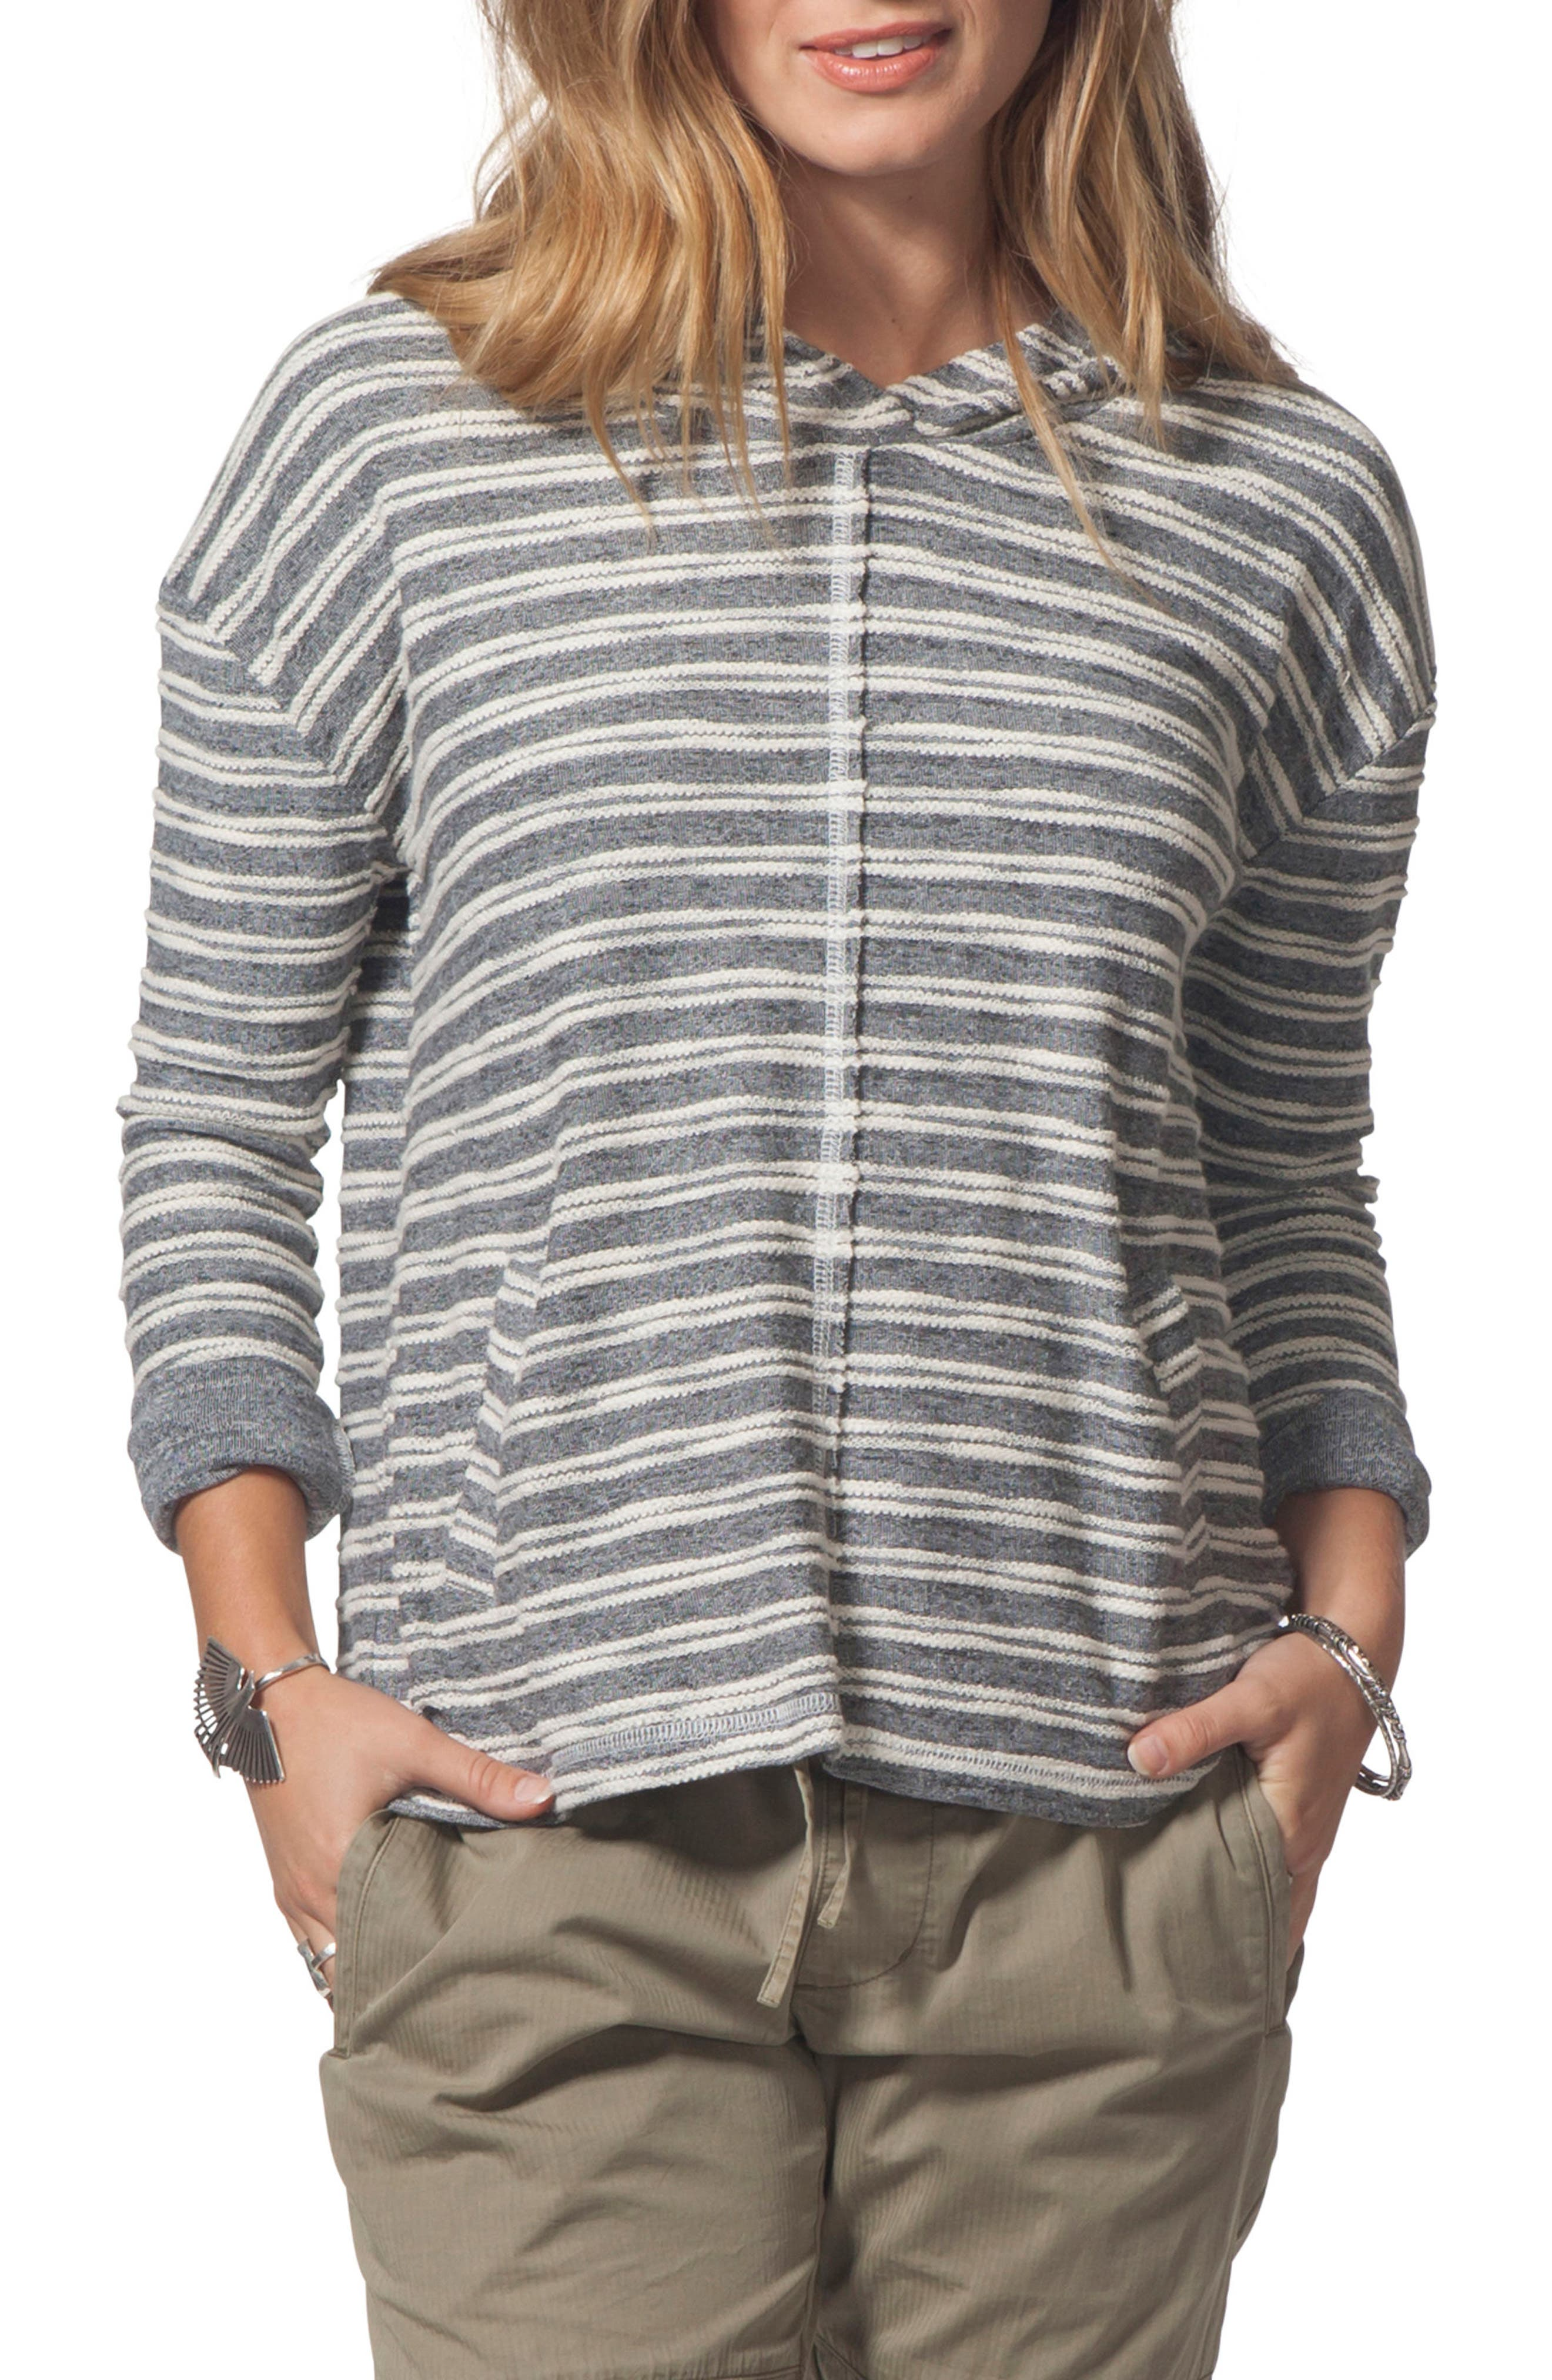 Next Move Stripe Hooded Pullover,                             Main thumbnail 1, color,                             BLACK